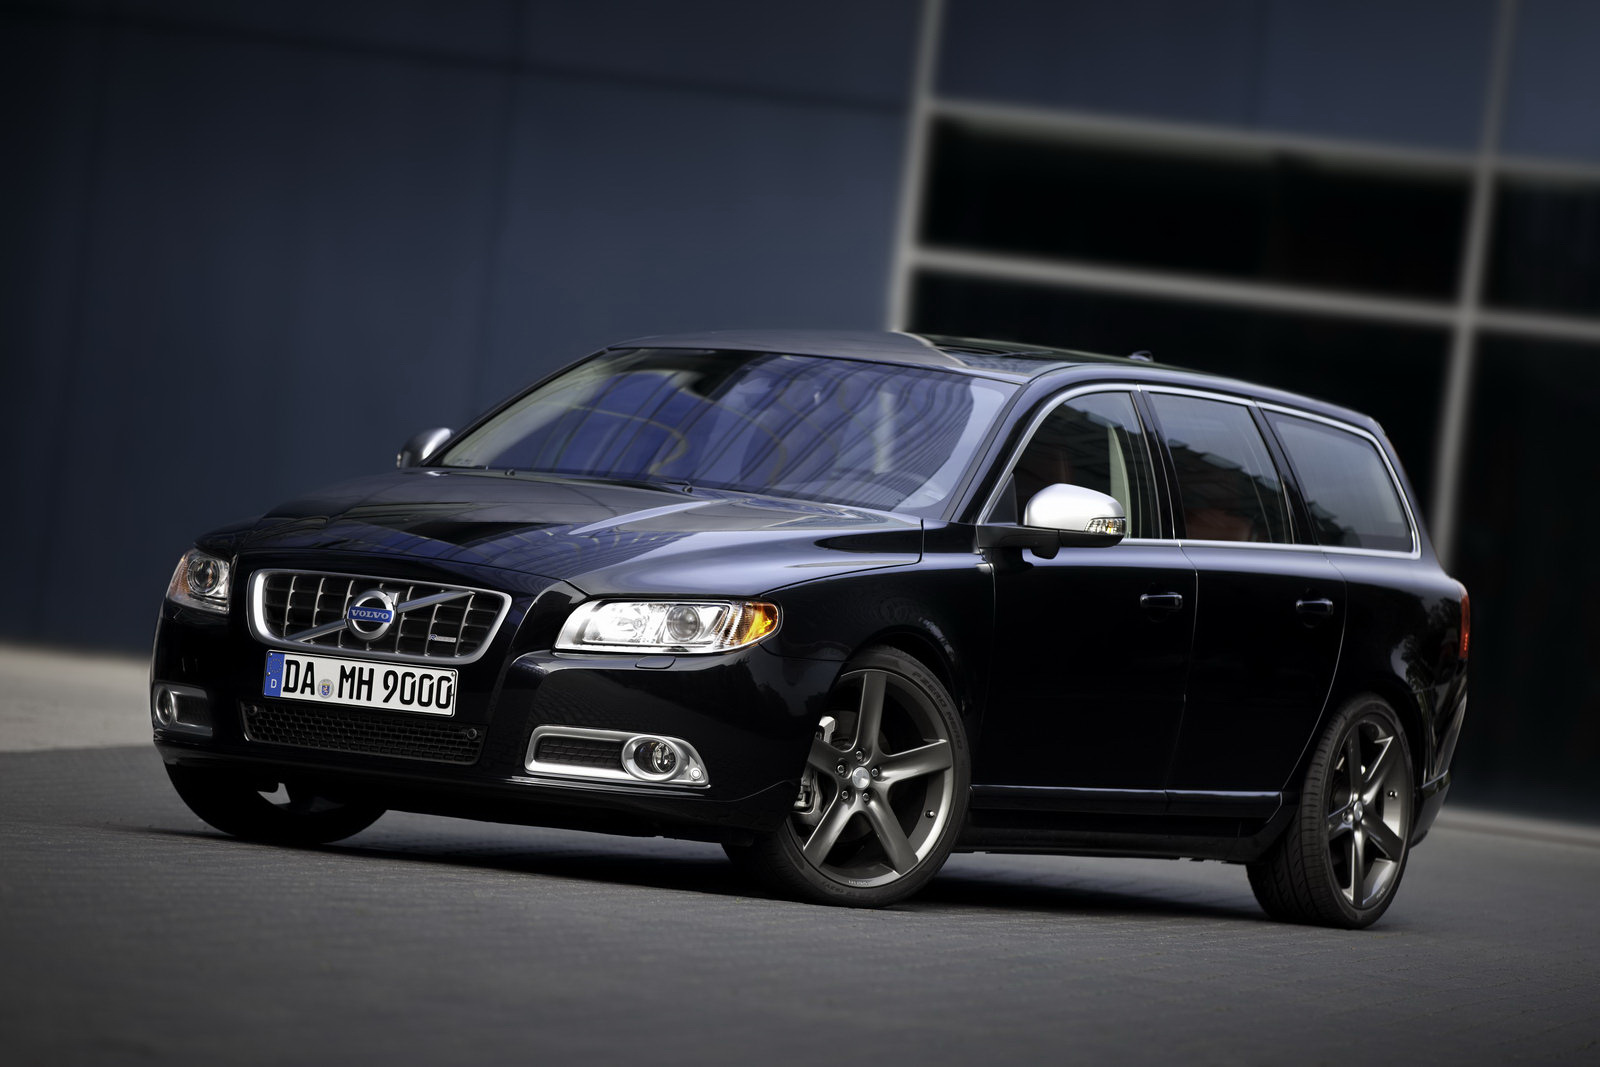 Carscoop Limited Edition Volvo V70 T6 Awd R Design With HD Wallpapers Download free images and photos [musssic.tk]